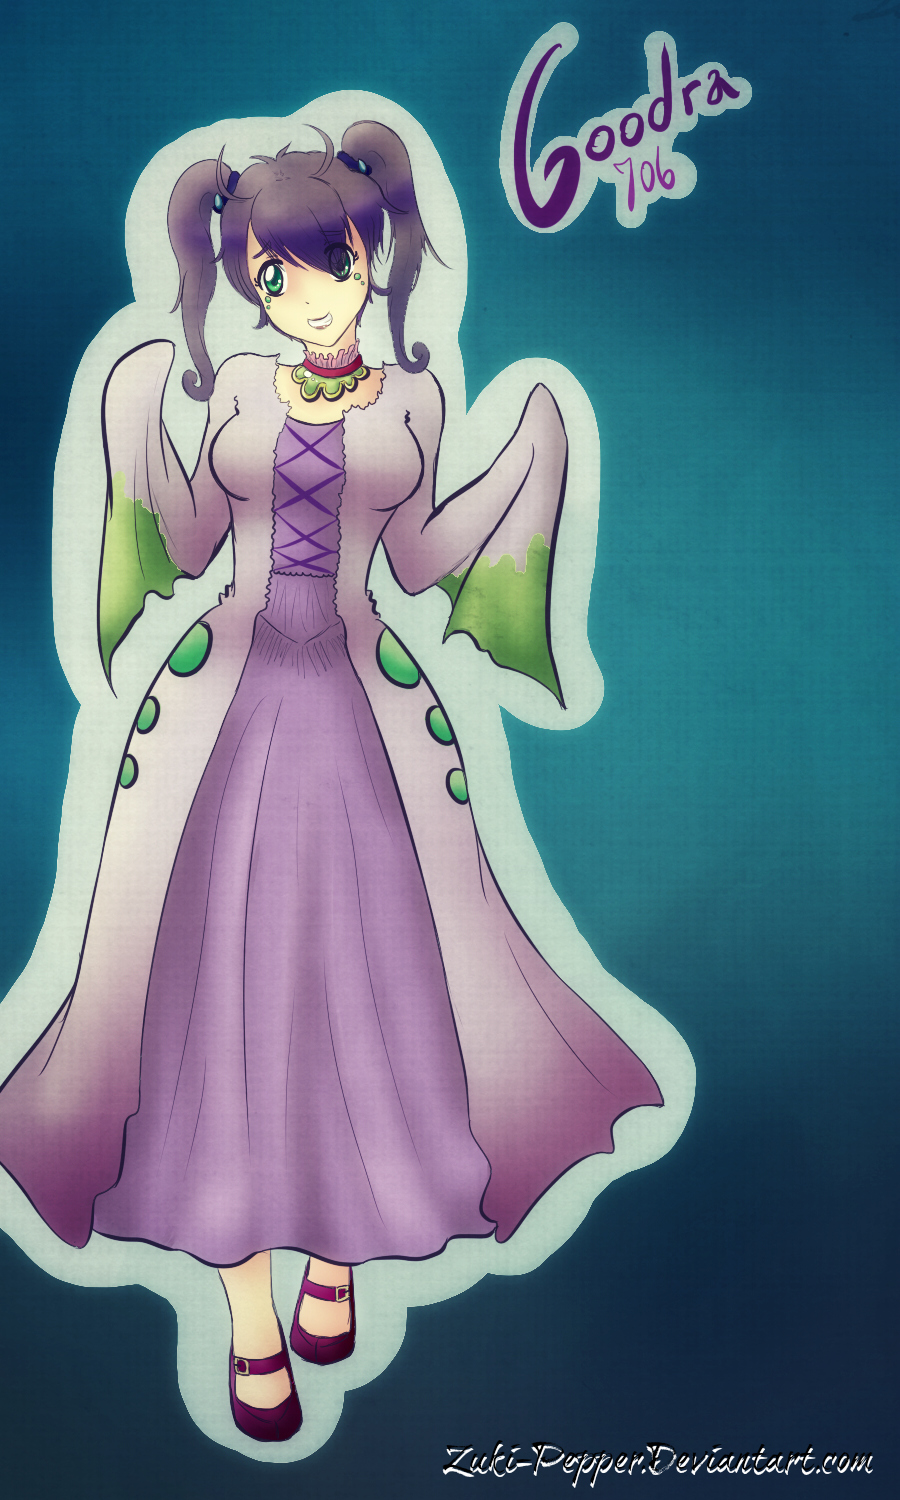 pkmn gijinka goodra lichi by zukipepper on deviantart